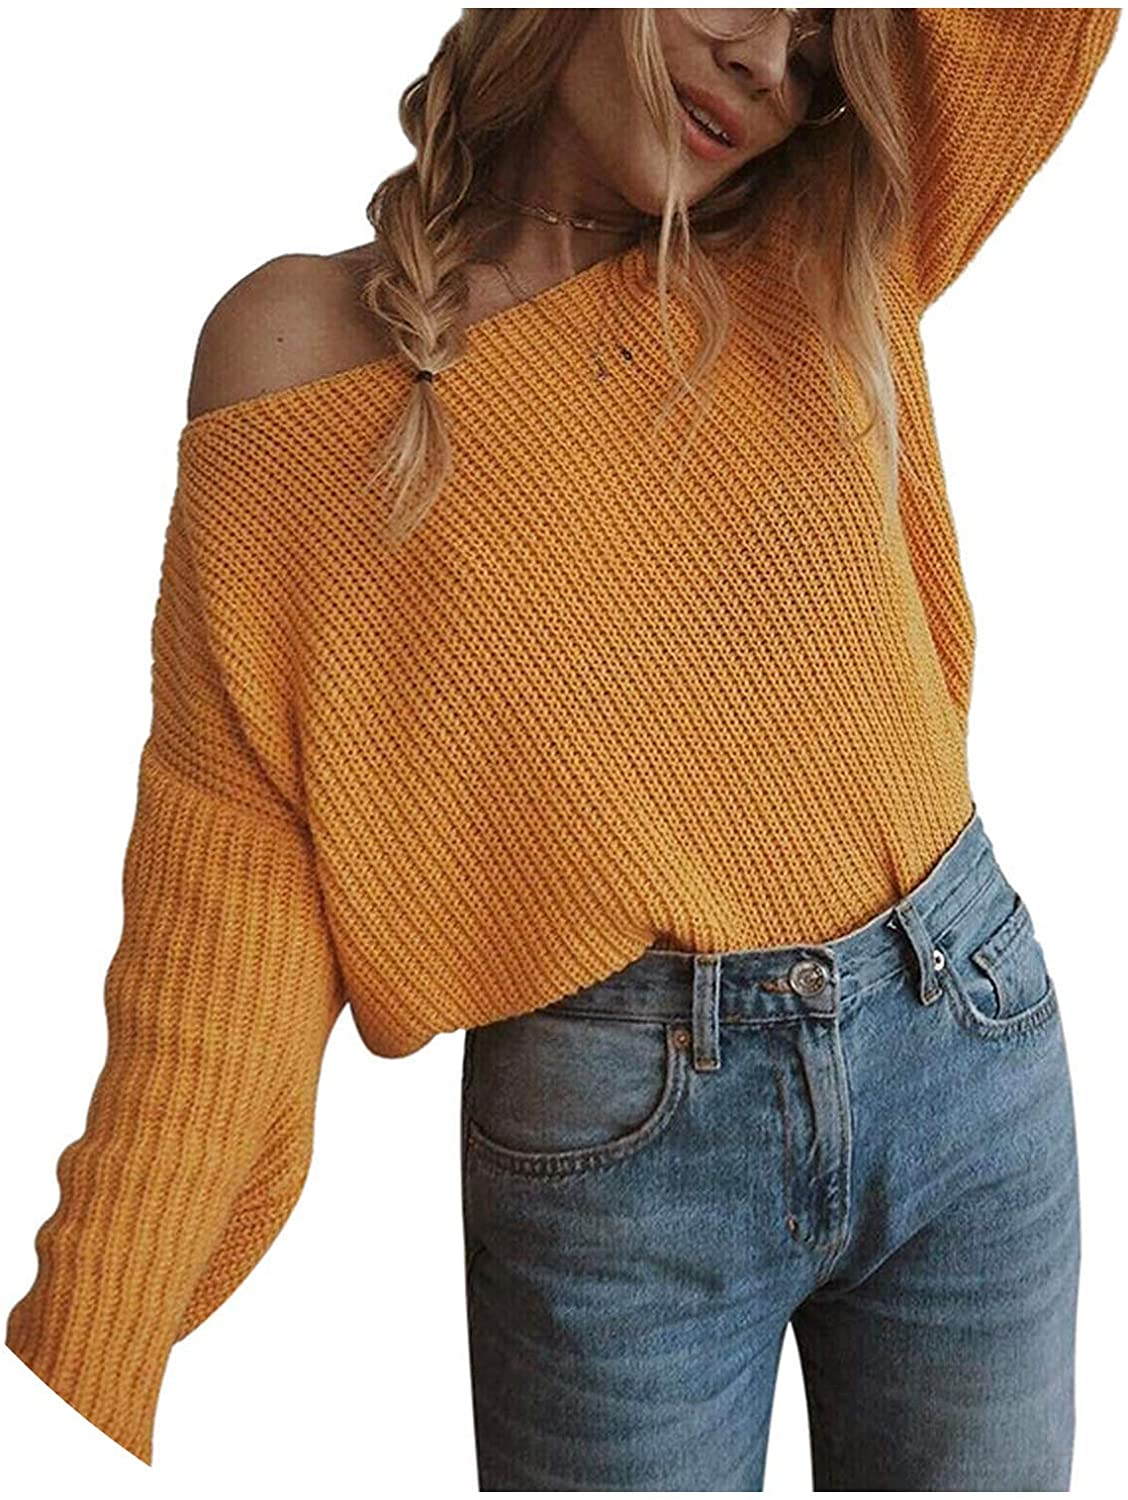 Off shoulderover Womens Sweater Knitted Sweater Loose Jumpers Oversized Sweater Plus Size